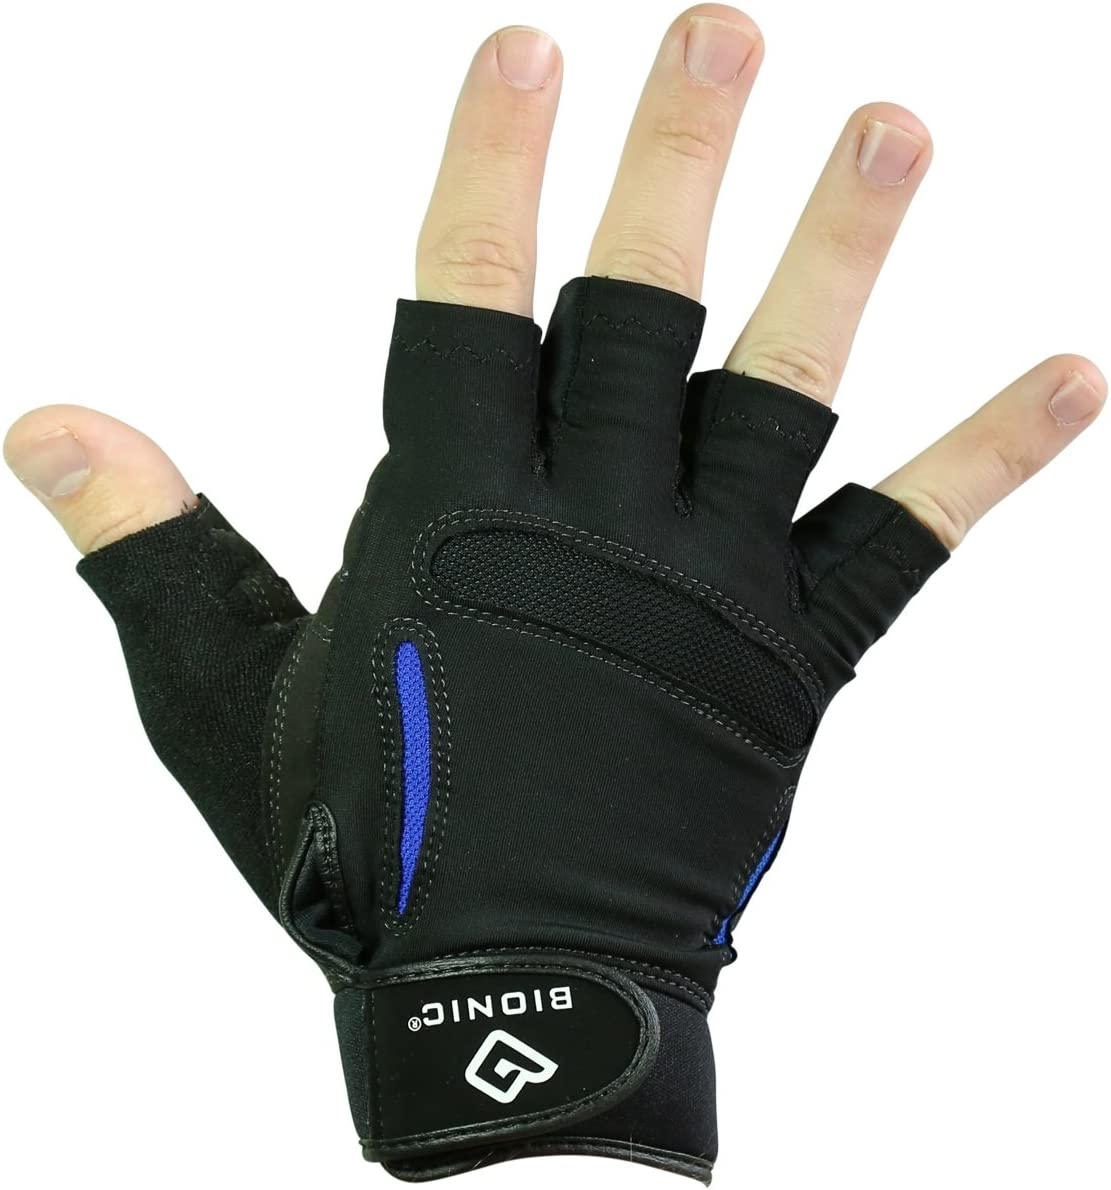 BIONIC Gloves – The Synthetic ReliefGrip (SRG) Fitness Gloves w/Patented Anatomical Relief Pad System (Pair)